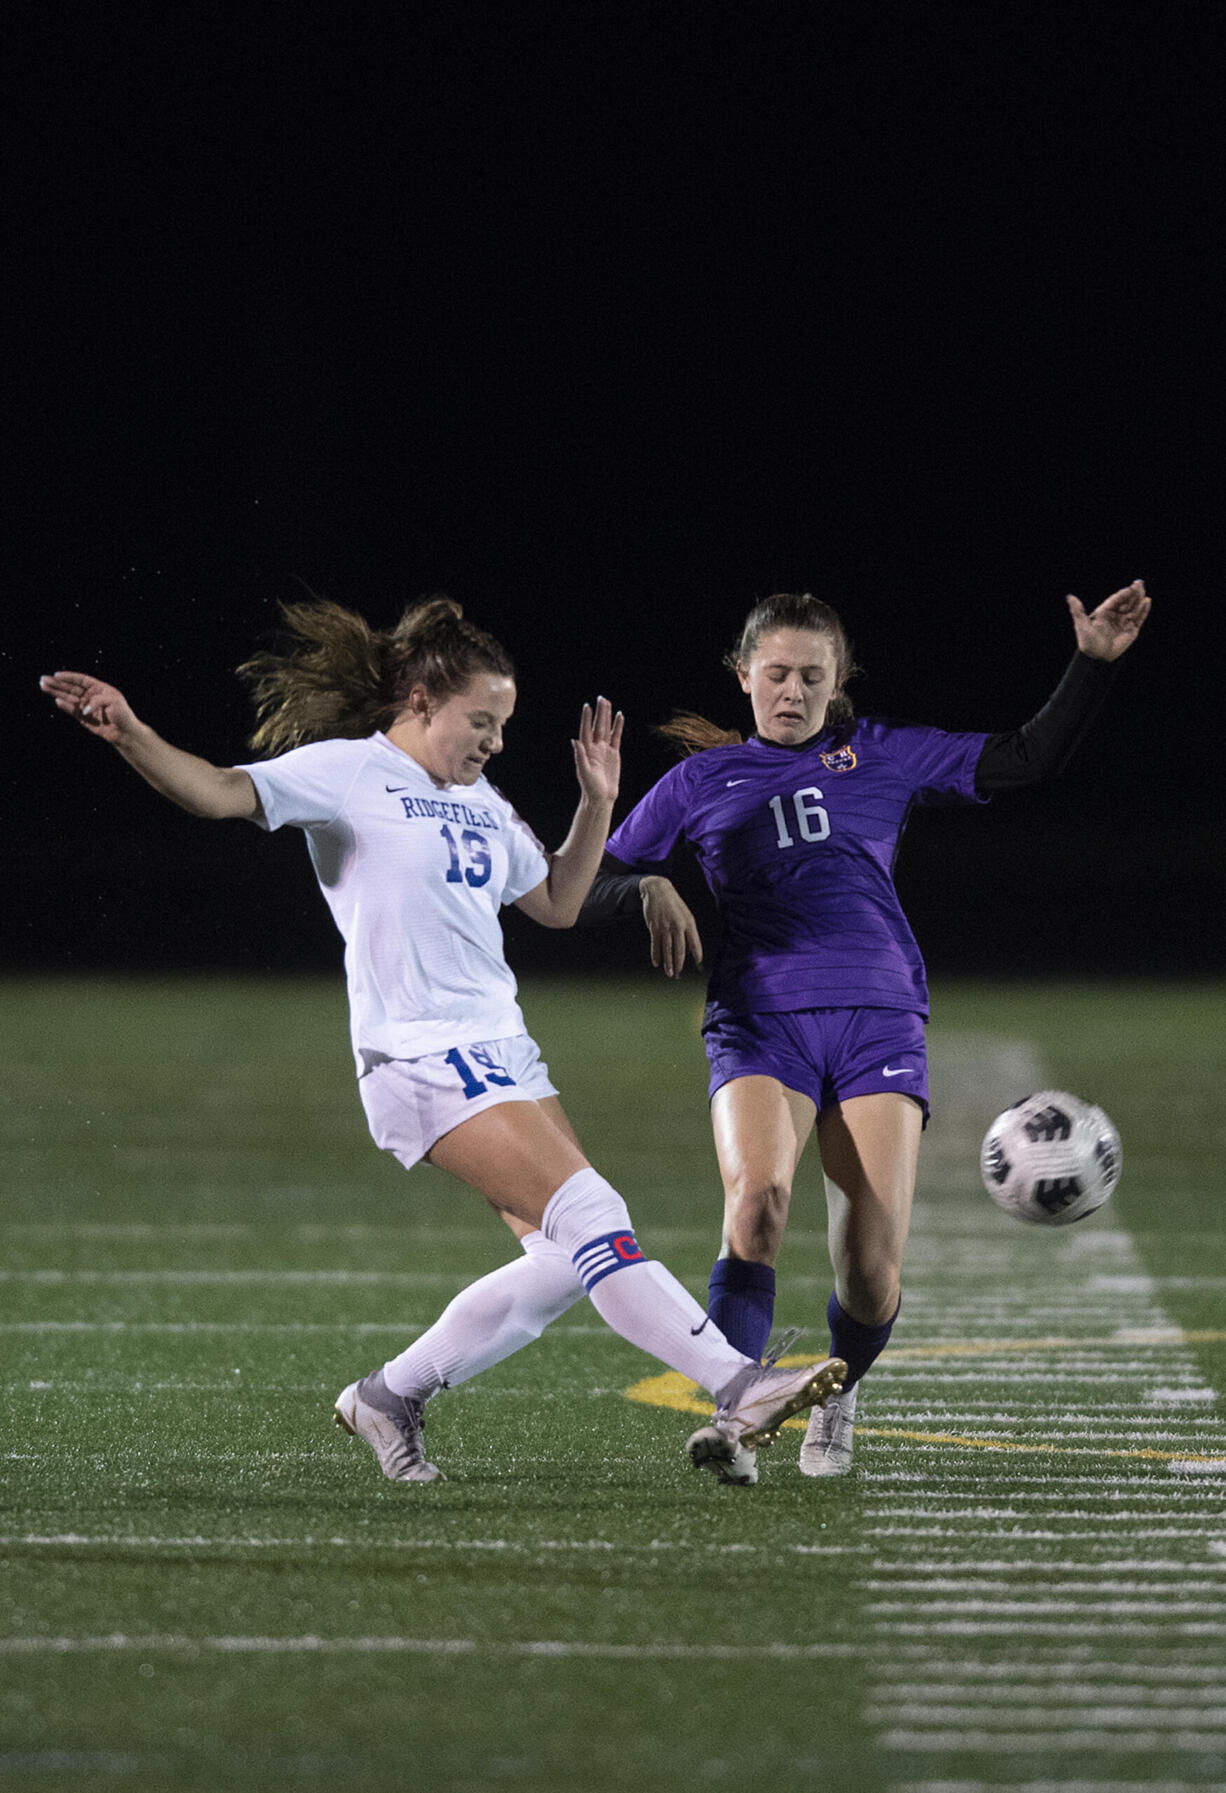 Ridgefield's Paytn Barnette (19) and Columbia River's Kinzi Drake (16) battle for the ball in the first half at Columbia River High School on Tuesday night, Oct. 12, 2021.